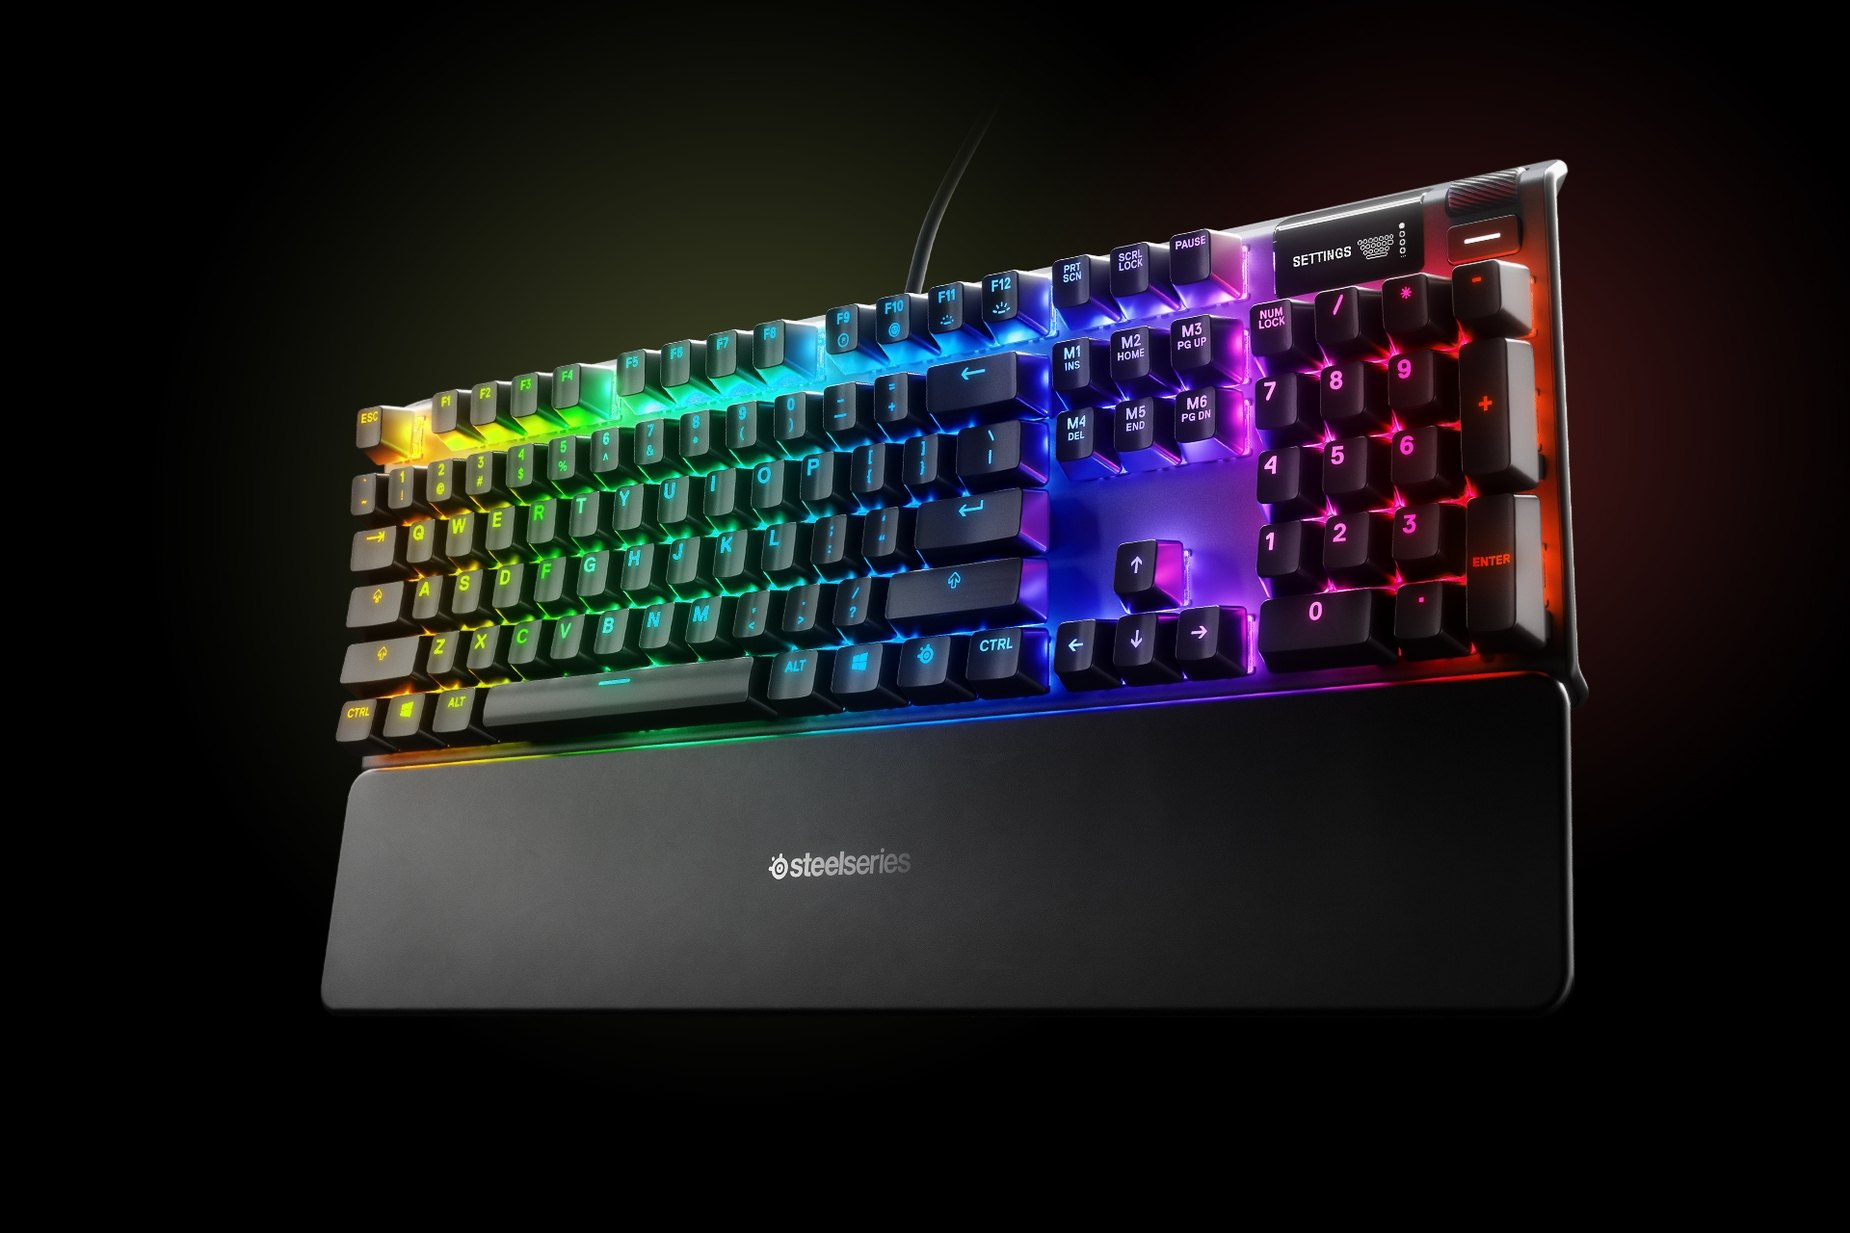 US English - Apex 7 (Blue Switch) gaming keyboard with the illumination lit up on dark background, also shows the OLED screen and controls used to change settings and adjust audio